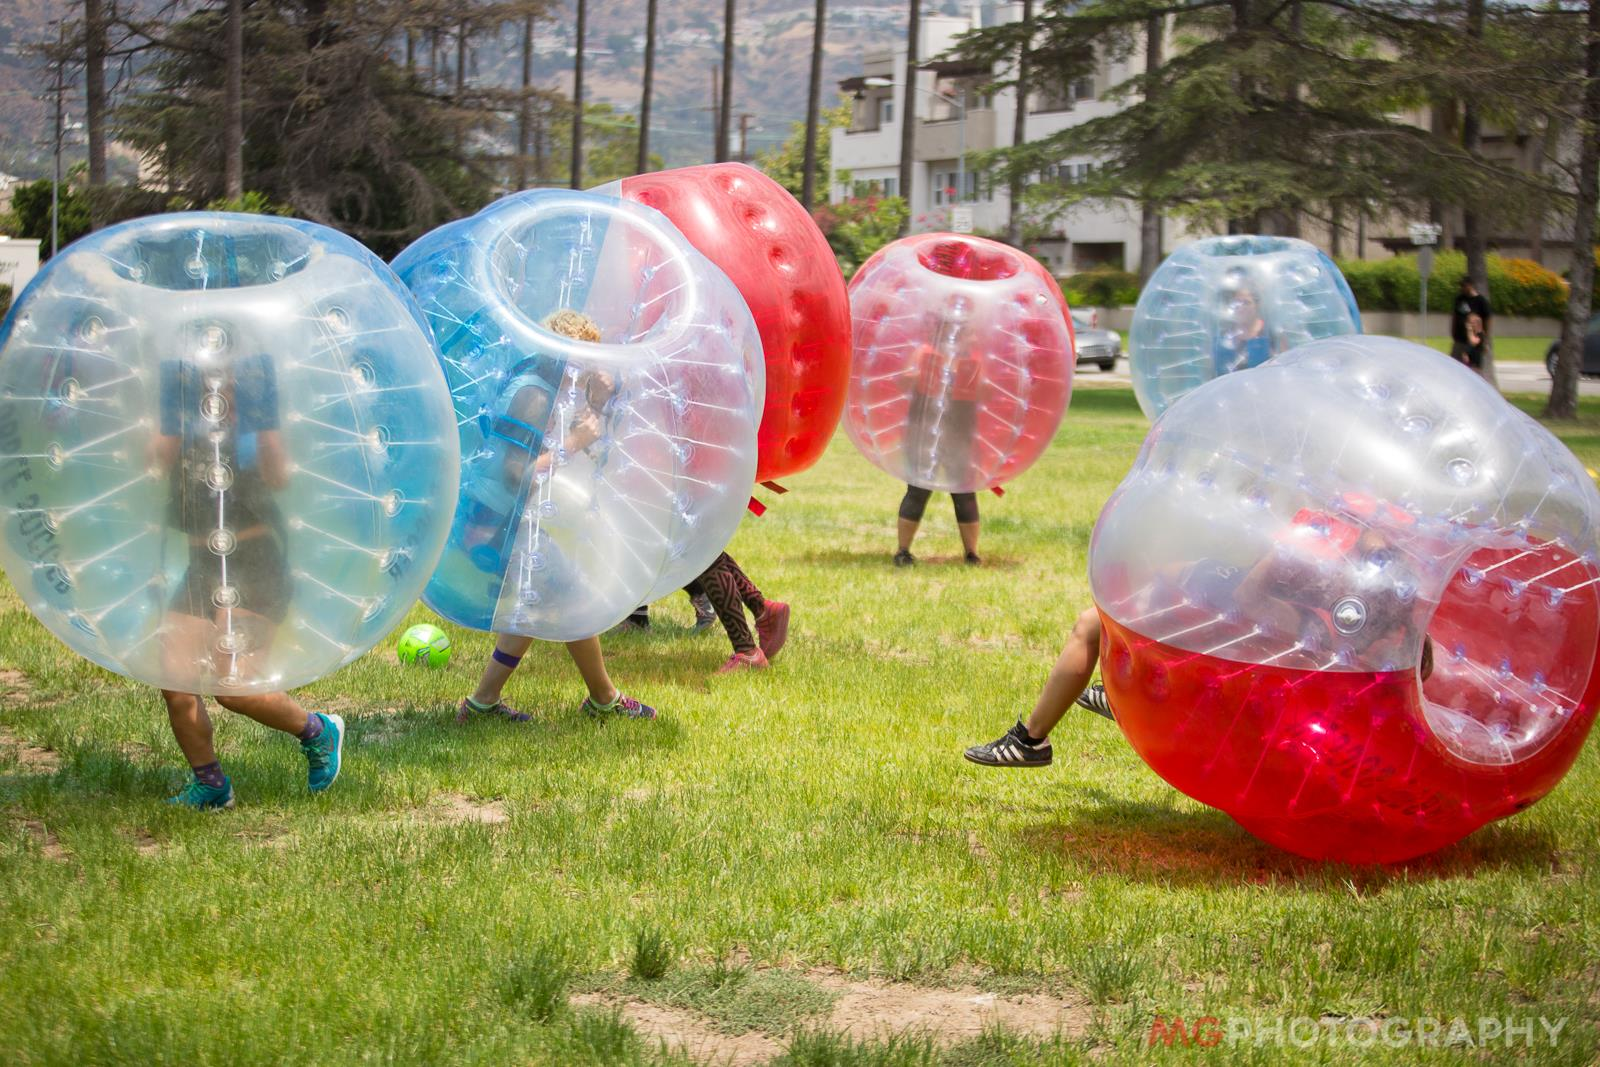 knockerball rental at a park in los angeles soccer